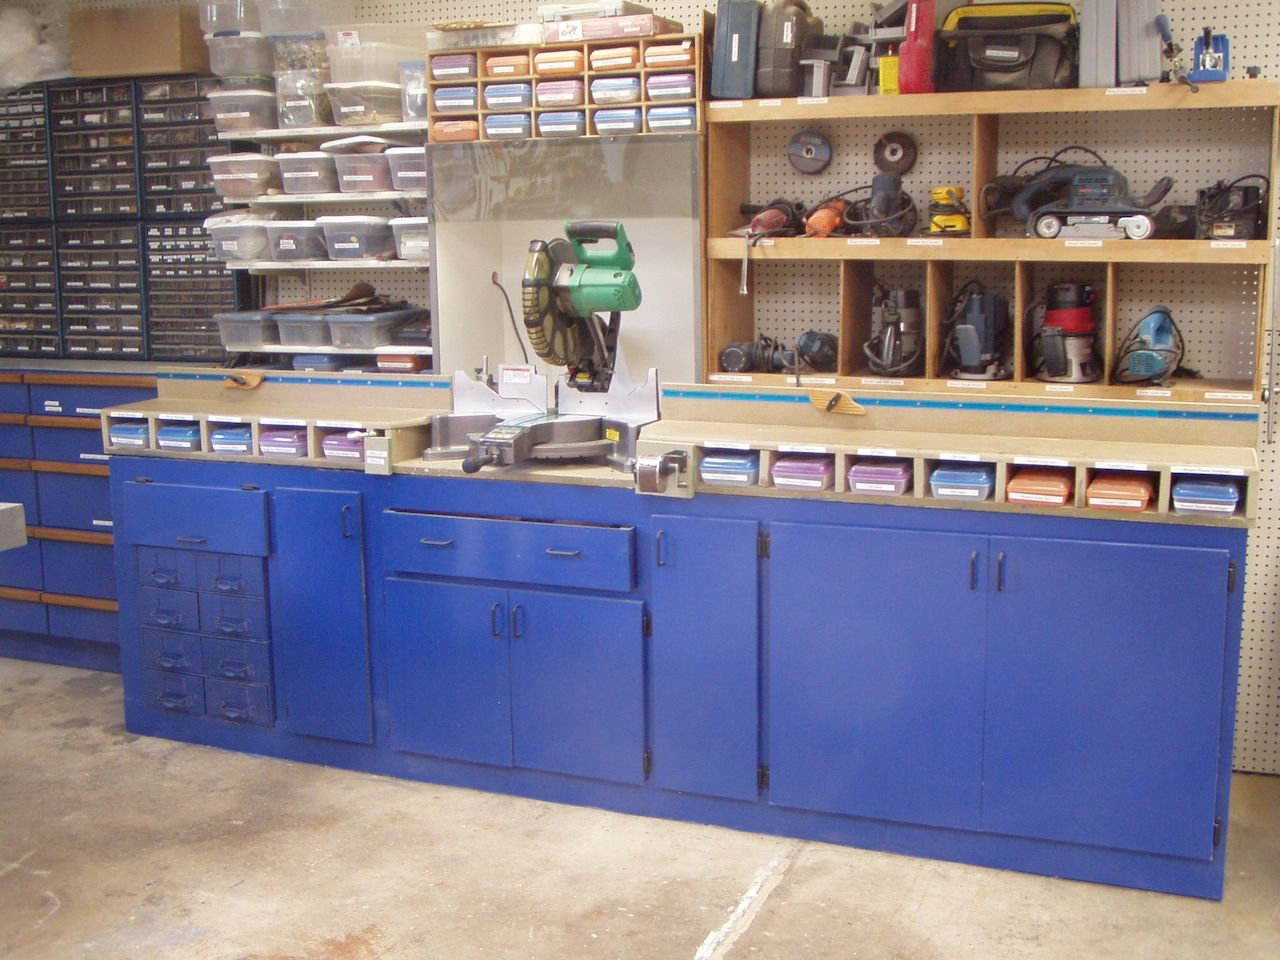 and work portable unusual cabinets cabinetsgarage station garage of for cabinet size info best tool full charitysplits storage usa boxs image build inspirations